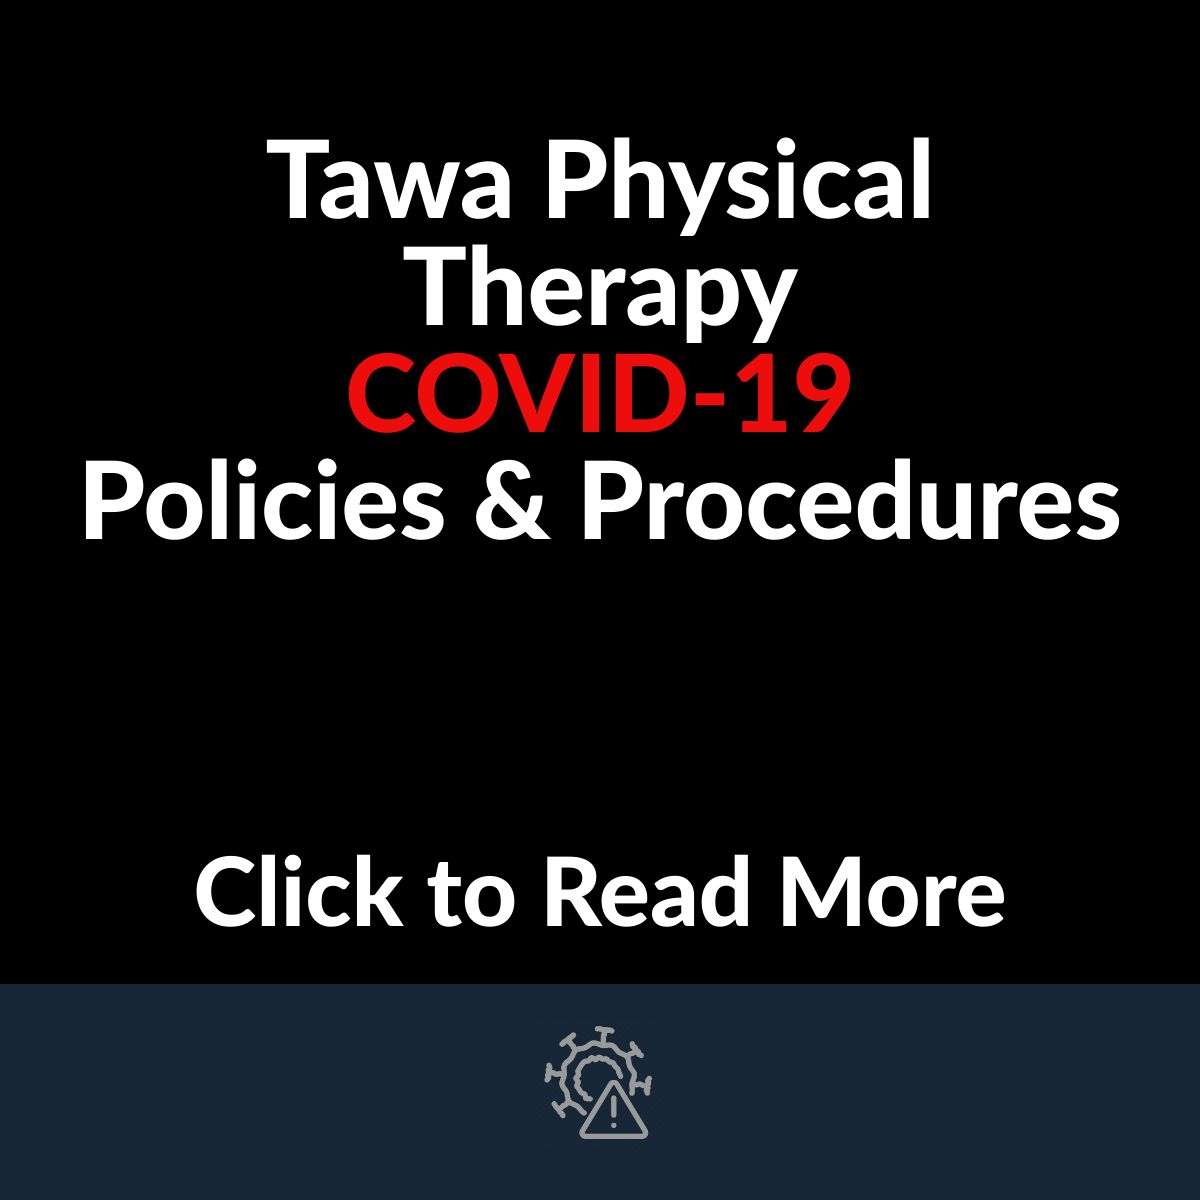 Tawa-Physical-Therapy-1200x1200-layout1718-1f72827